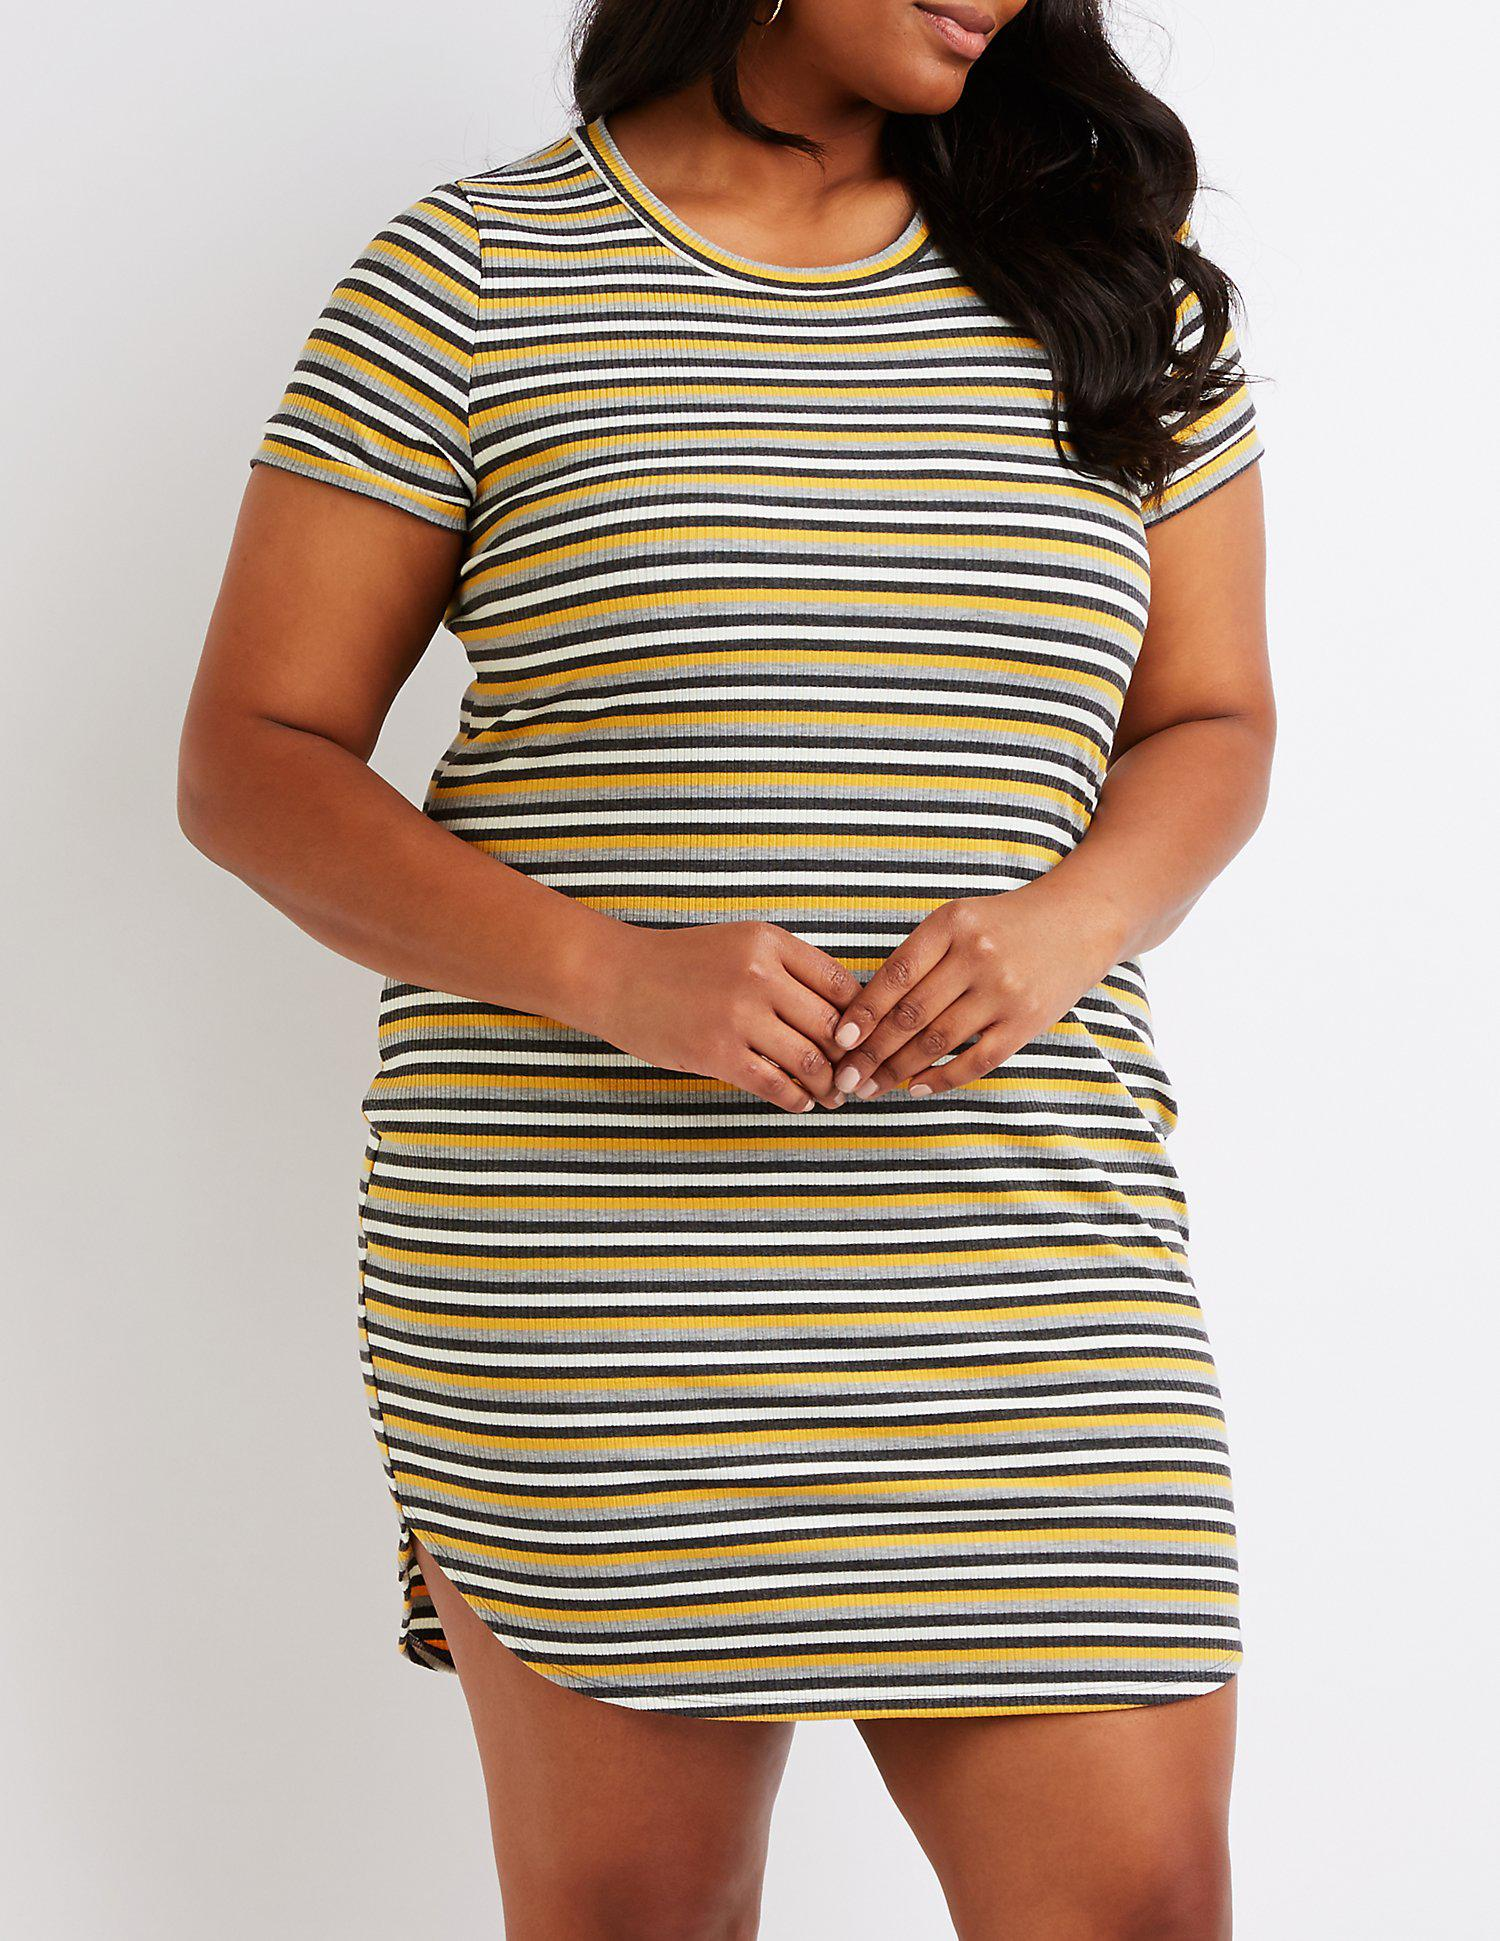 527bfc7ee83 Charlotte Russe. Women s Plus Size Striped Ribbed Dress